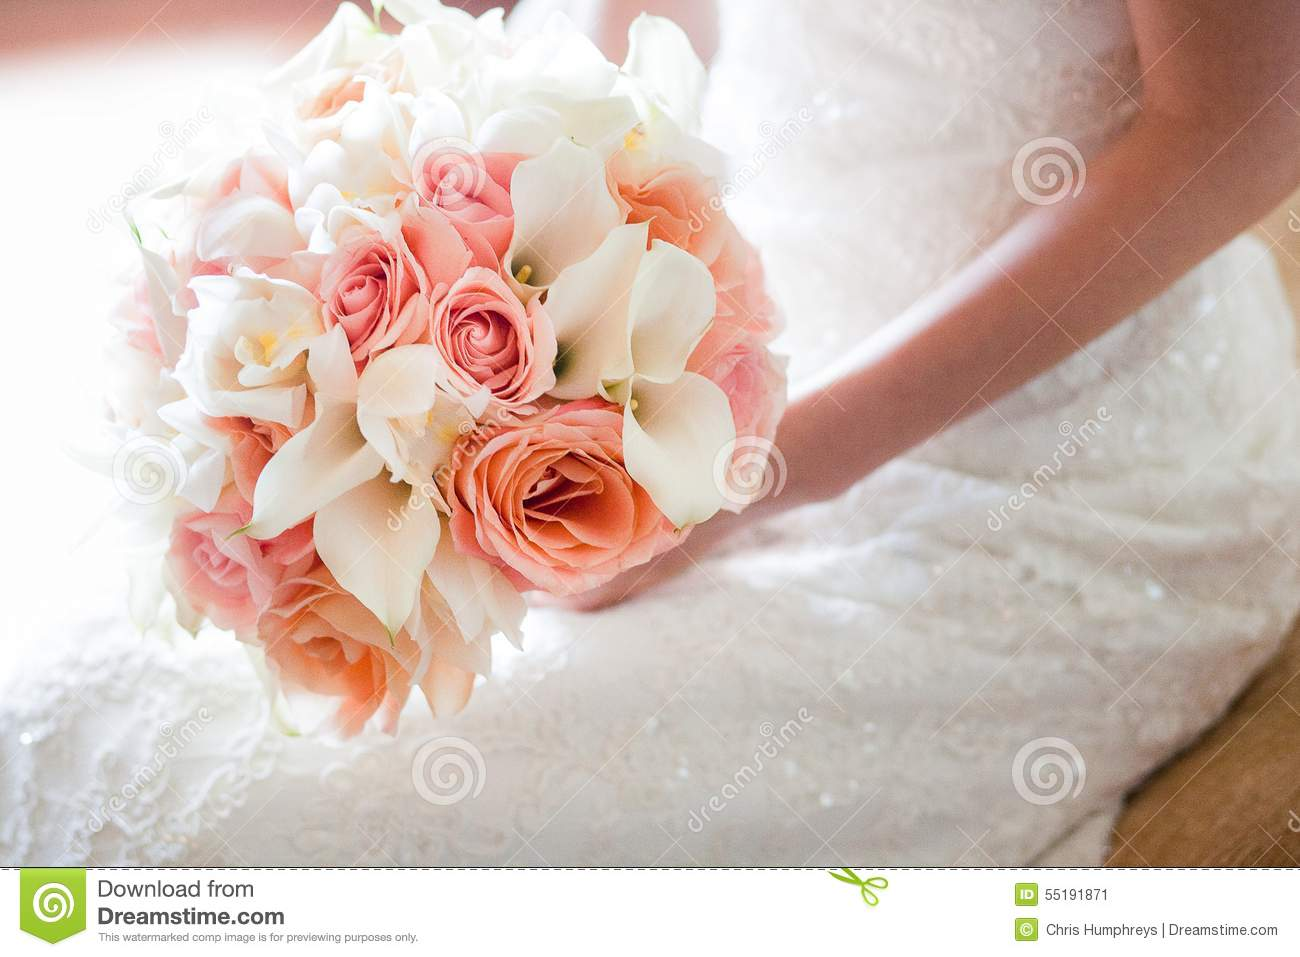 Royalty Free Stock Photo Download Bride With Beautiful Orange And Pink Wedding Bouquet Of Flowers